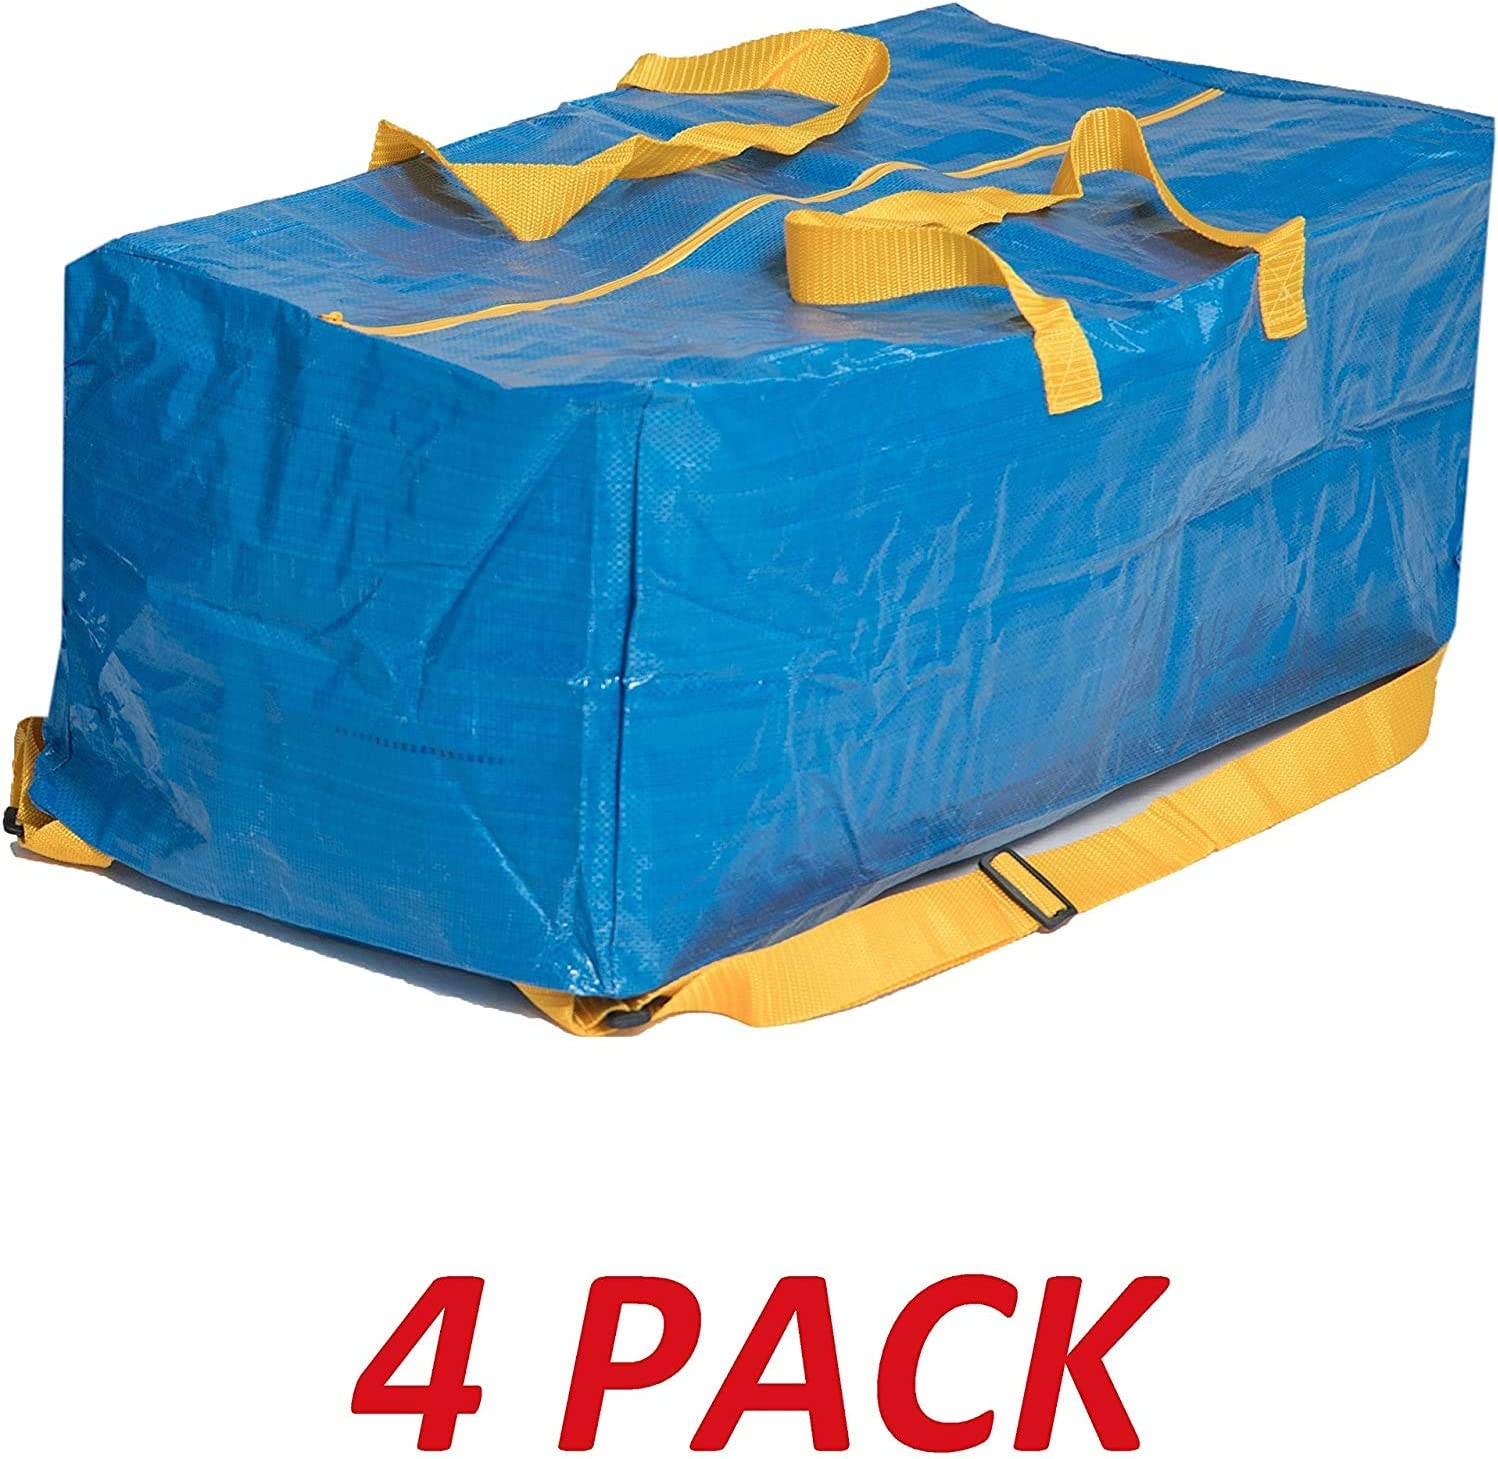 Klickpick Home Pack of 4- Heavy Duty Reusable Extra Large Storage Bags Laundry Bag Shopping Tote Moving Totes Bags Underbed Storage Bins Zipper -Backpack Handles,Compatible with IKEA FRAKTA CART